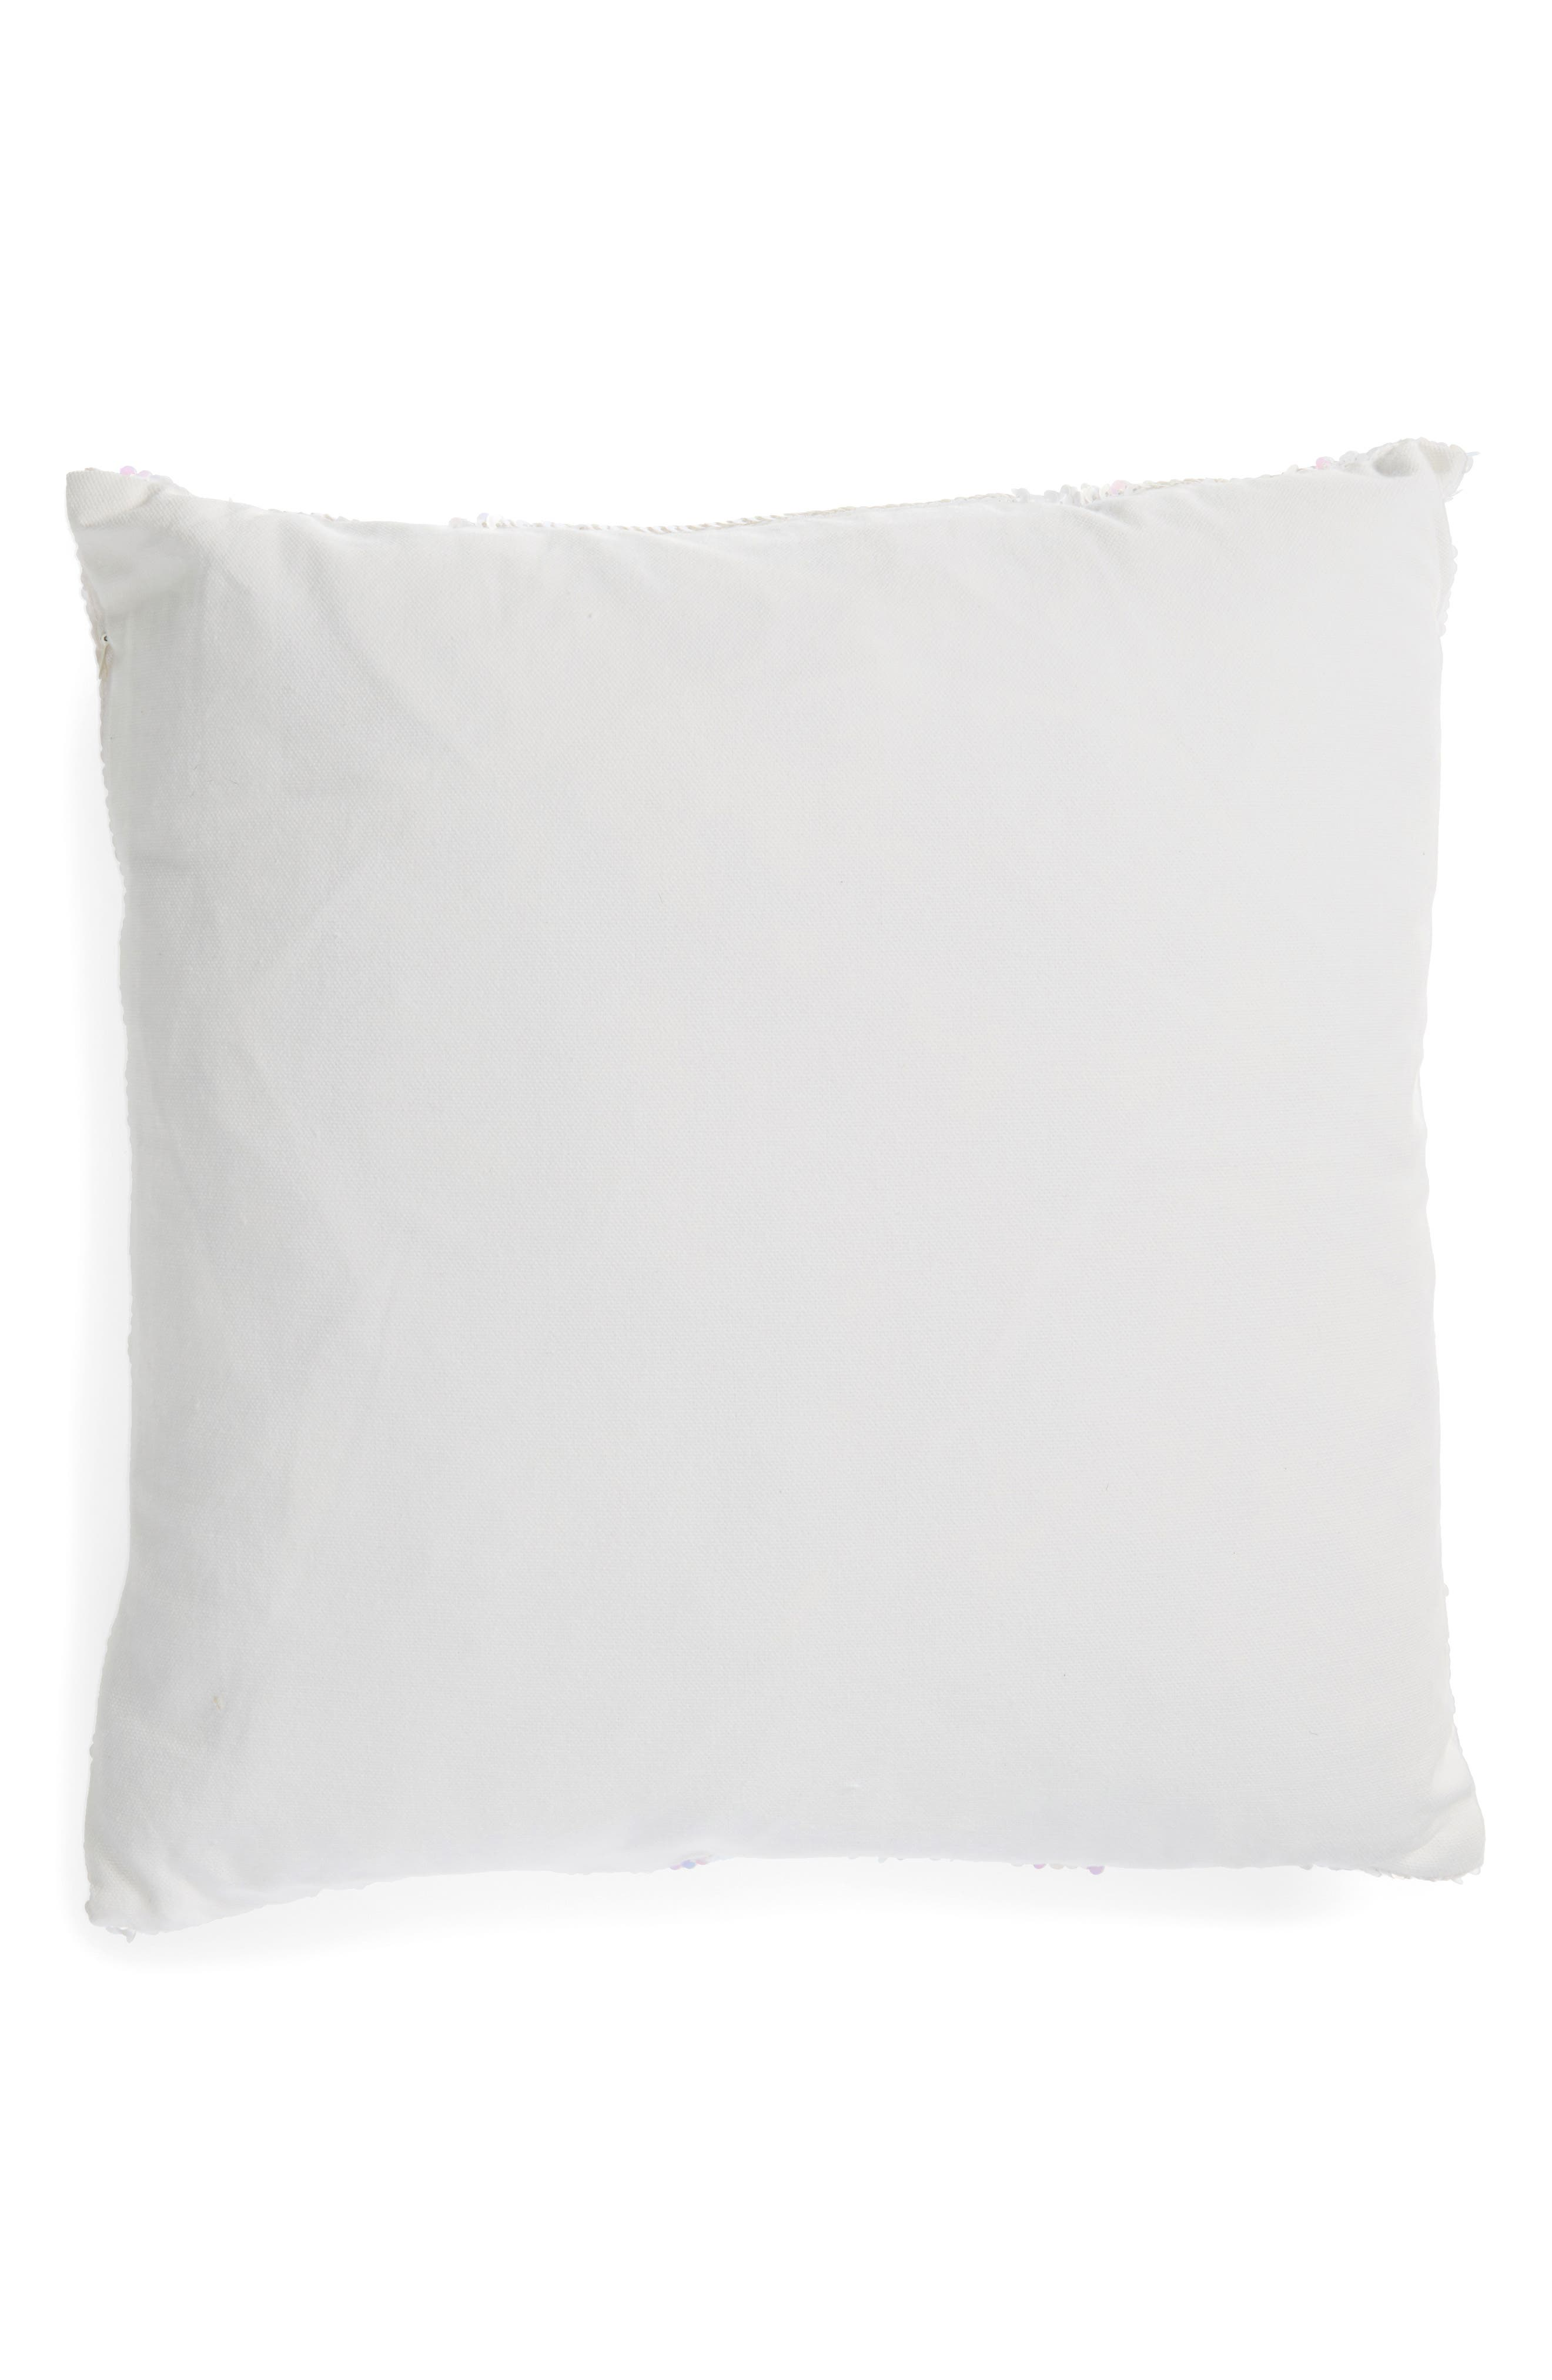 Iridescent Sequin Accent Pillow,                             Alternate thumbnail 2, color,                             Ivory